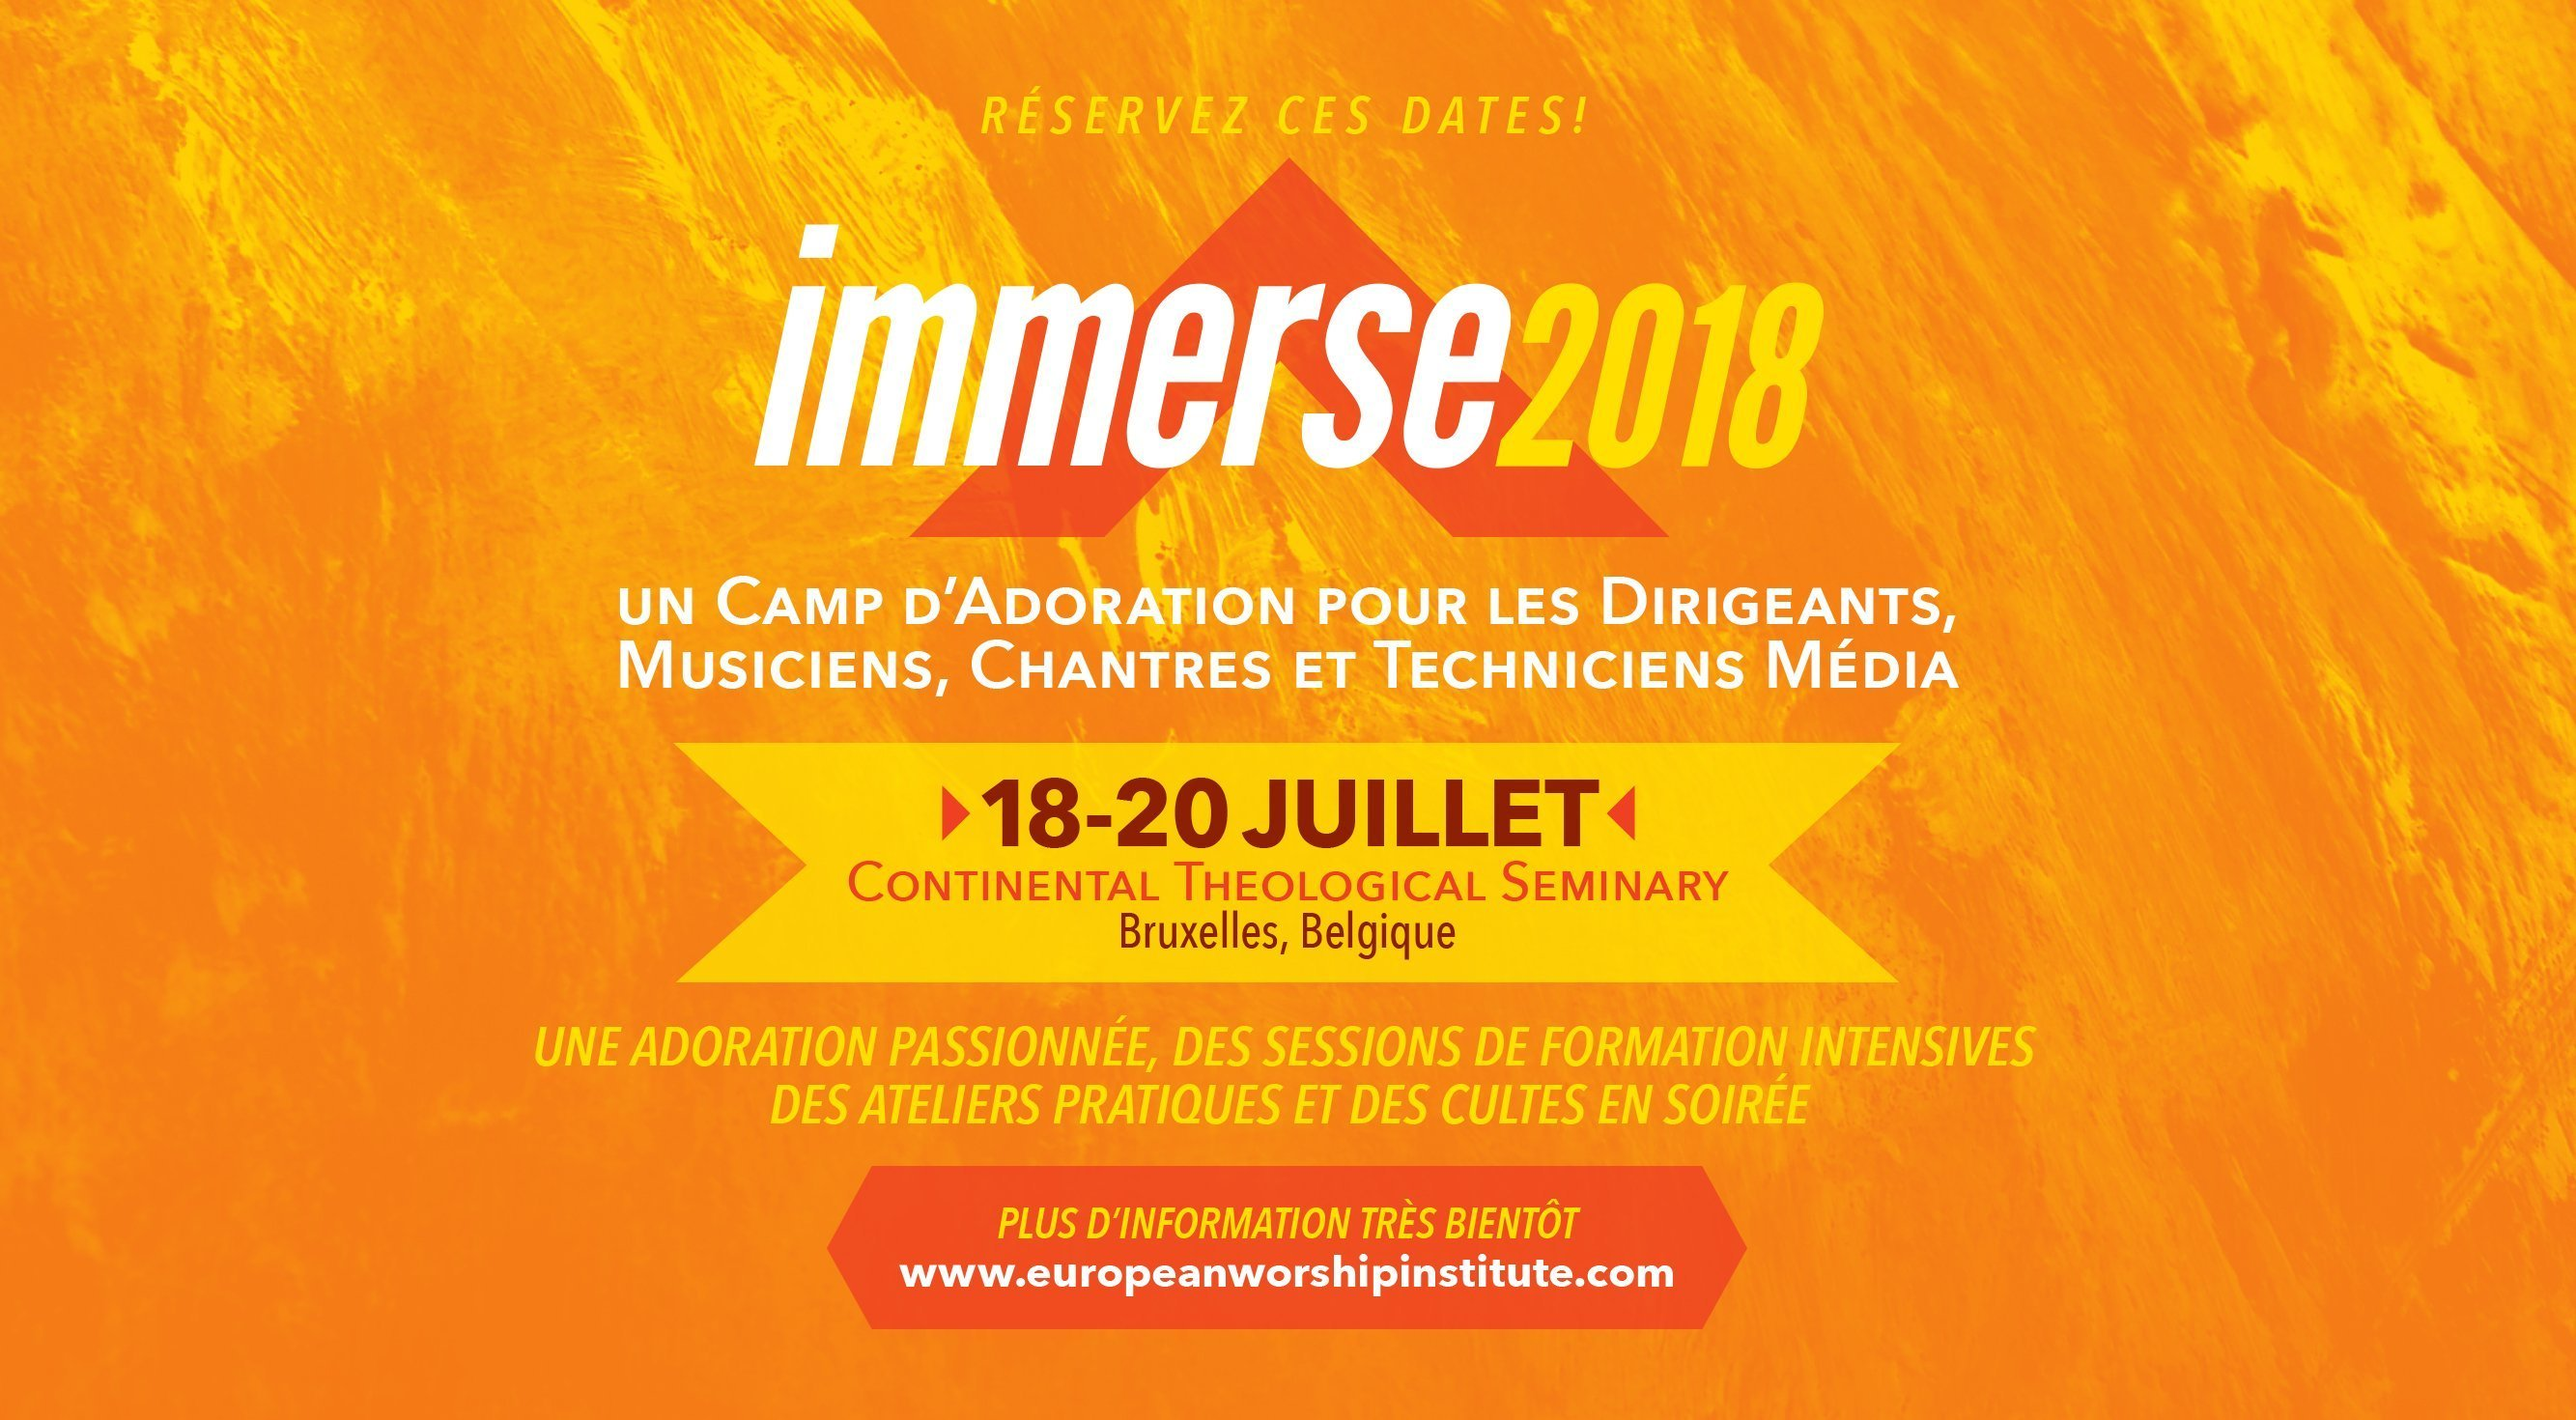 Immerse Bruxelles 2018